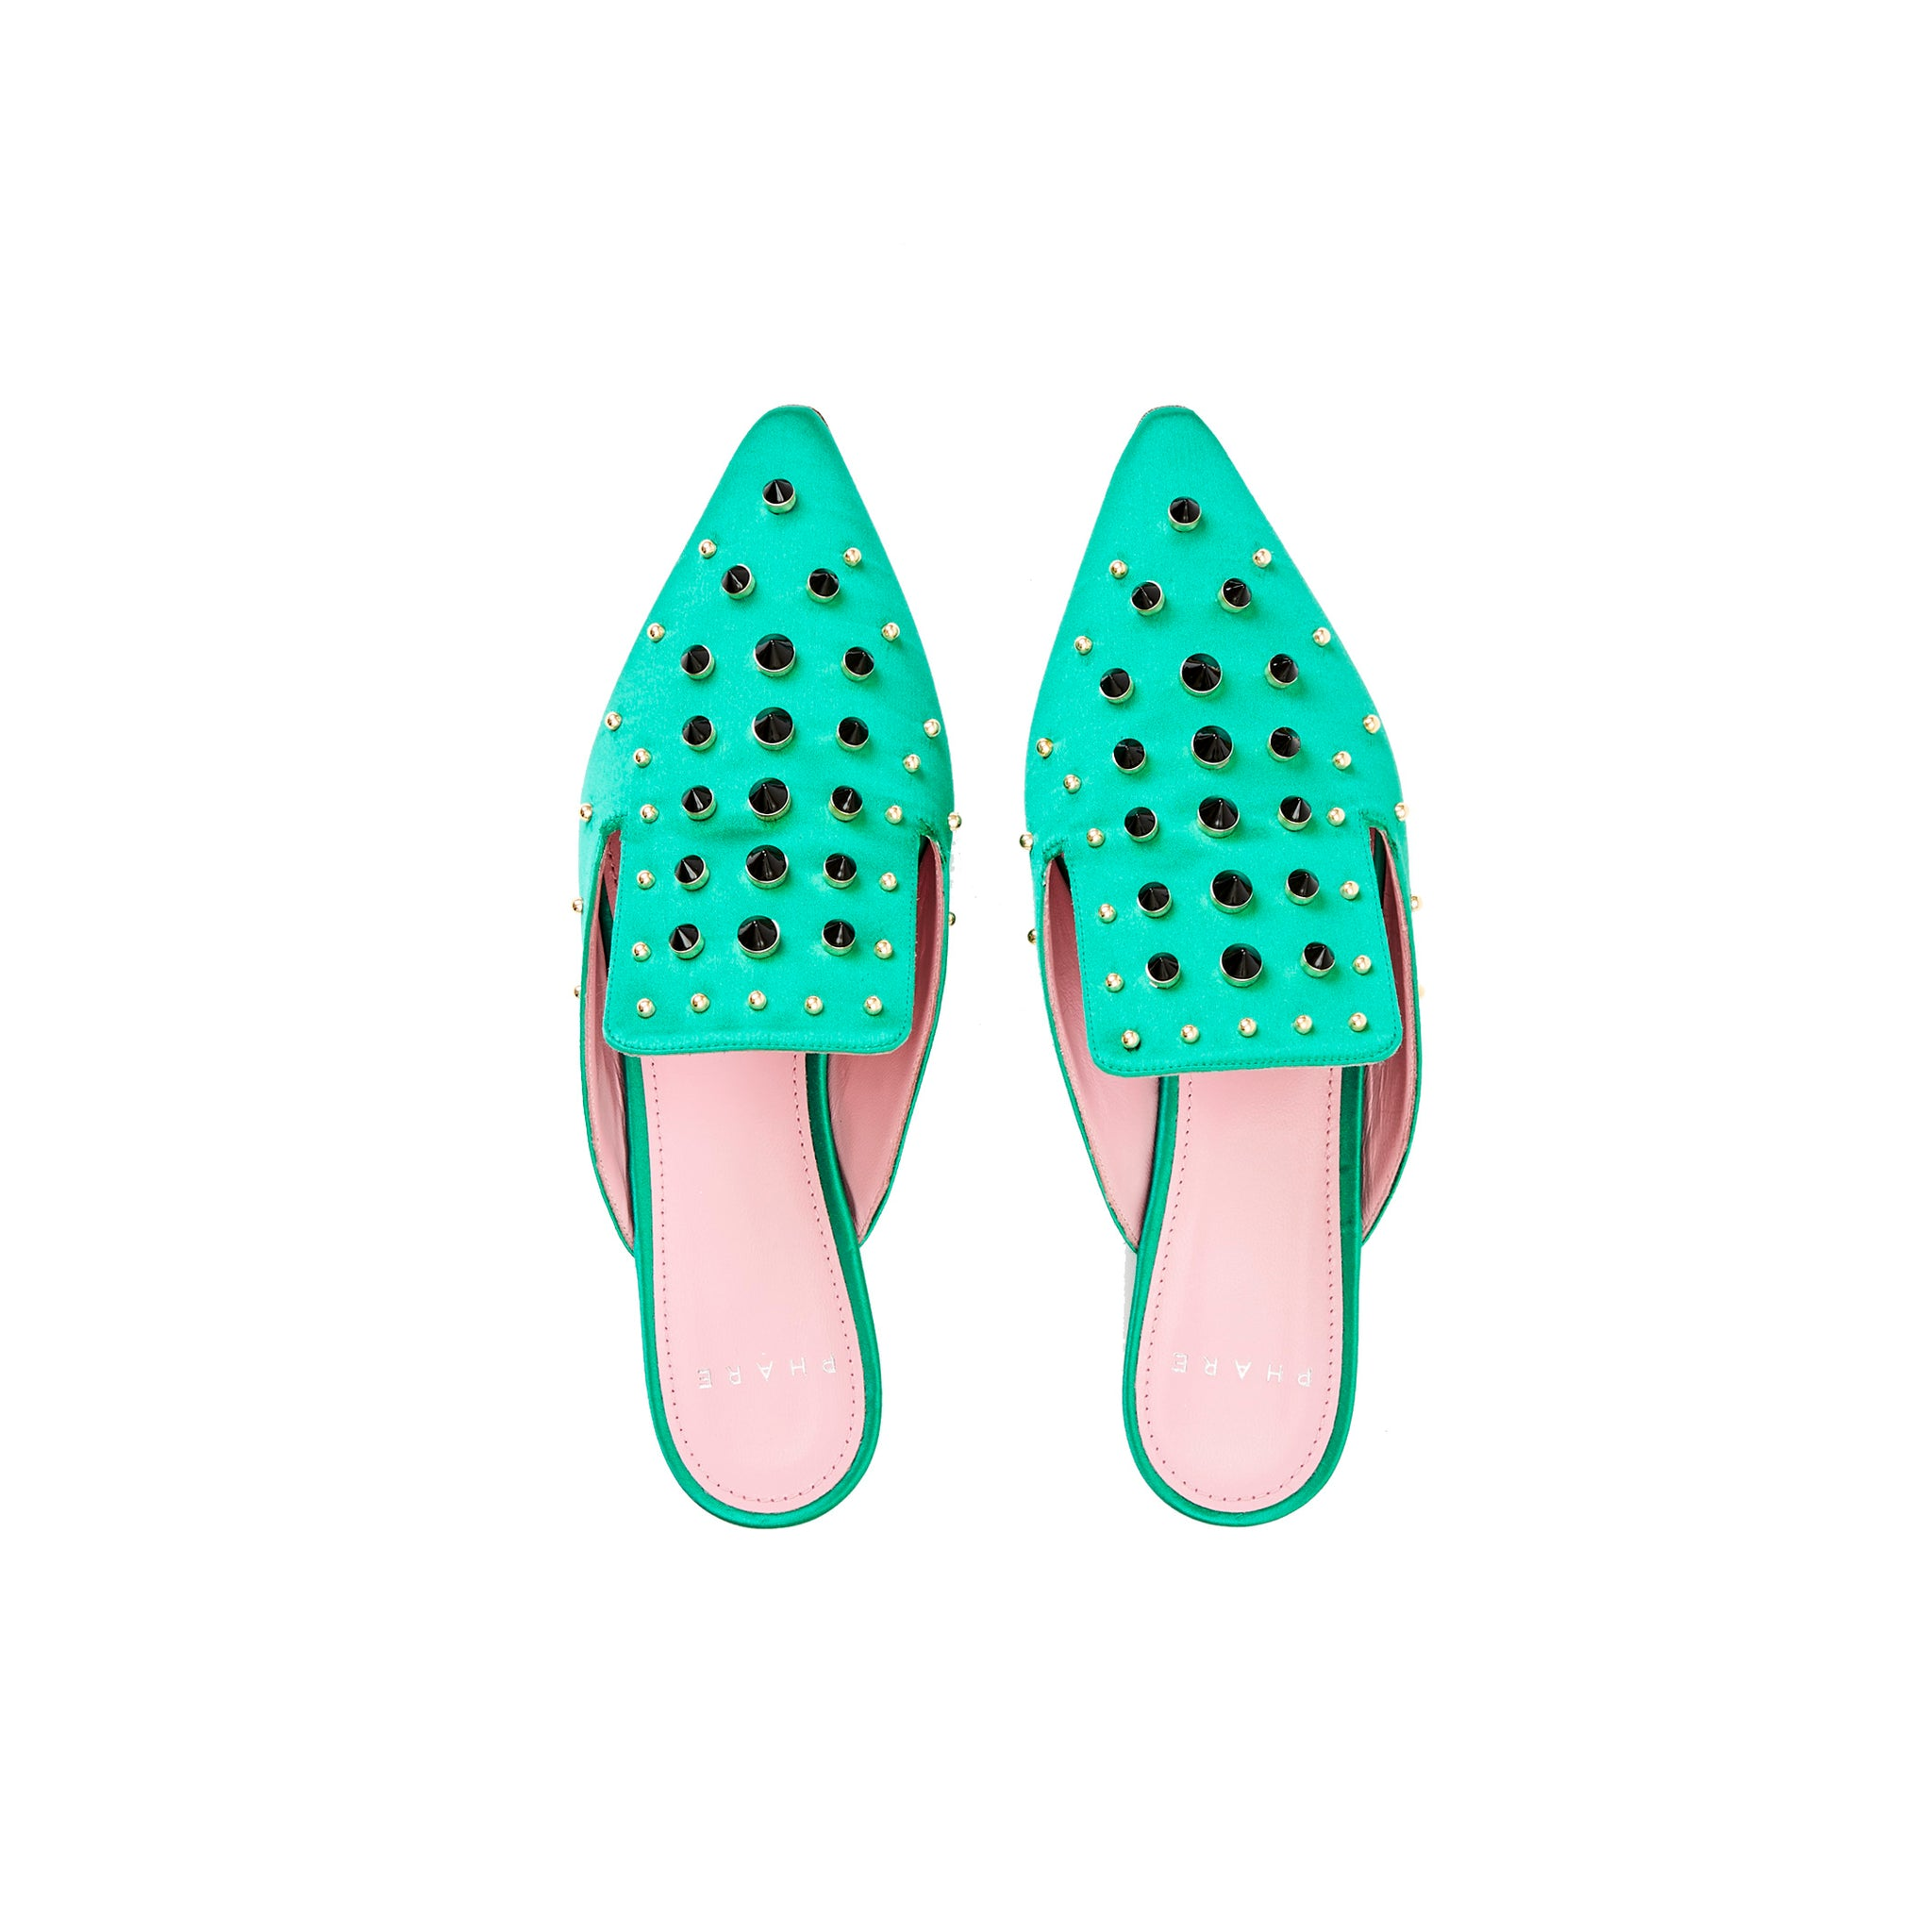 Phare Studded mule in verde silk satin with black and gold studs top view